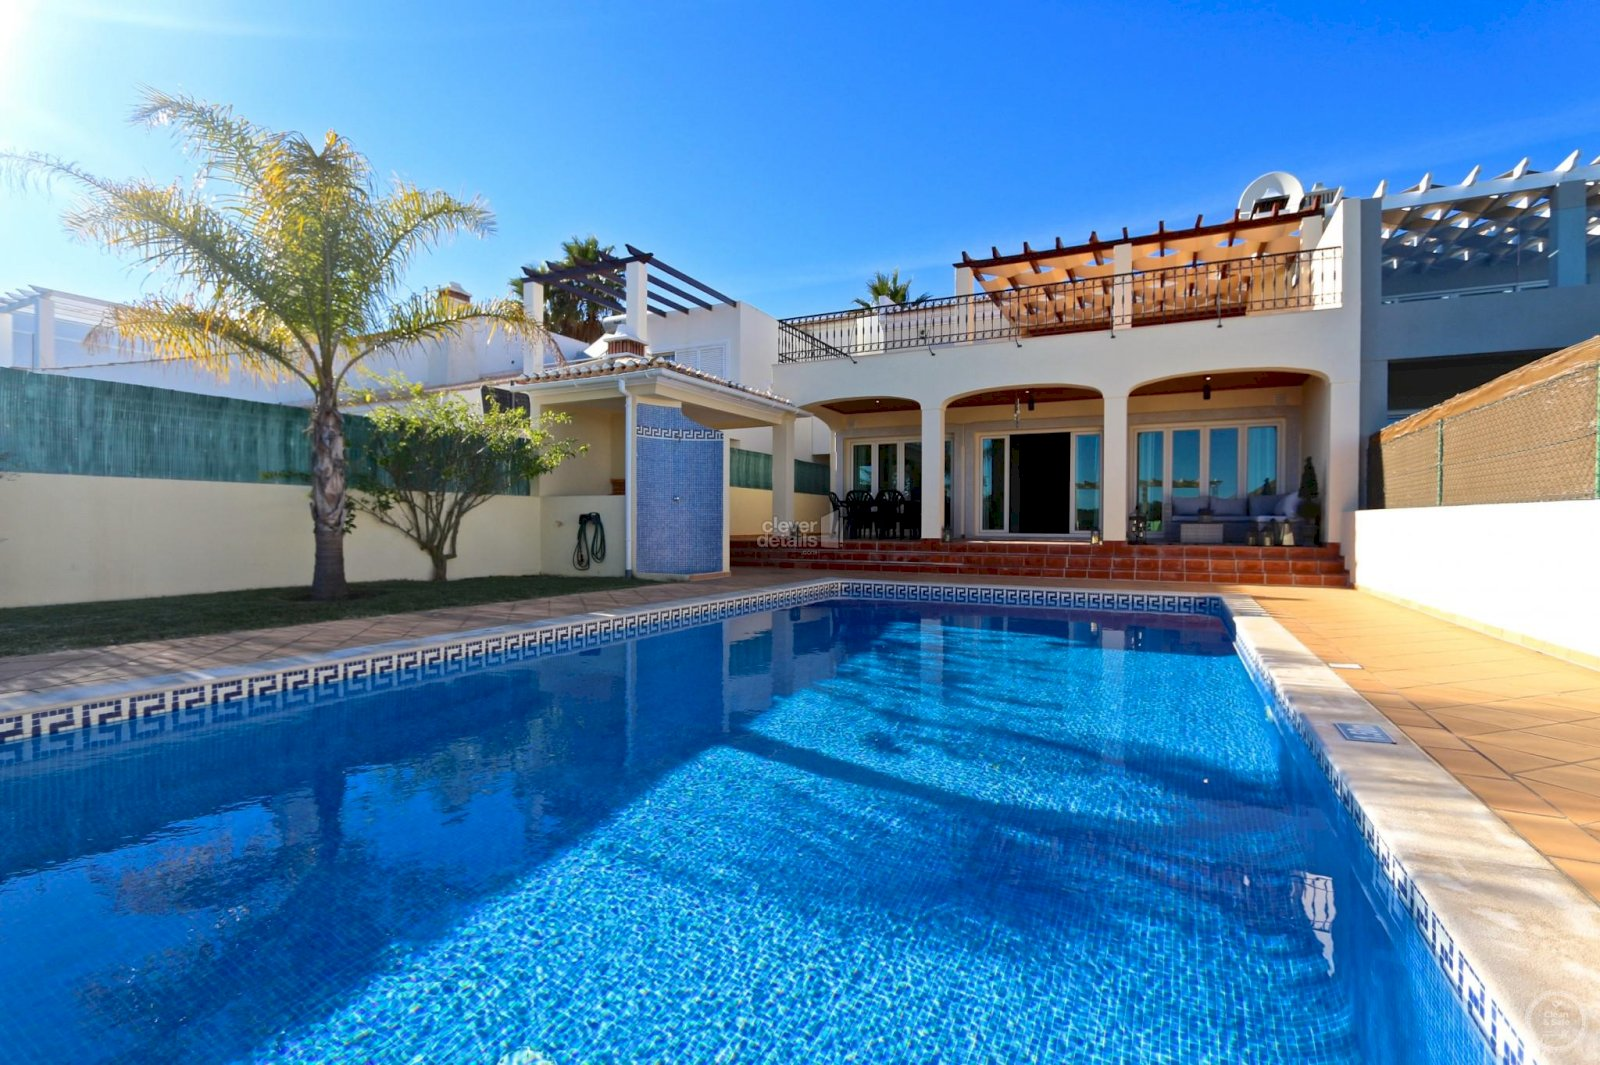 Fantastic summer holiday villa in Vilamoura with private swimming pool. Perfect villa lettings for family holidays in Algarve.